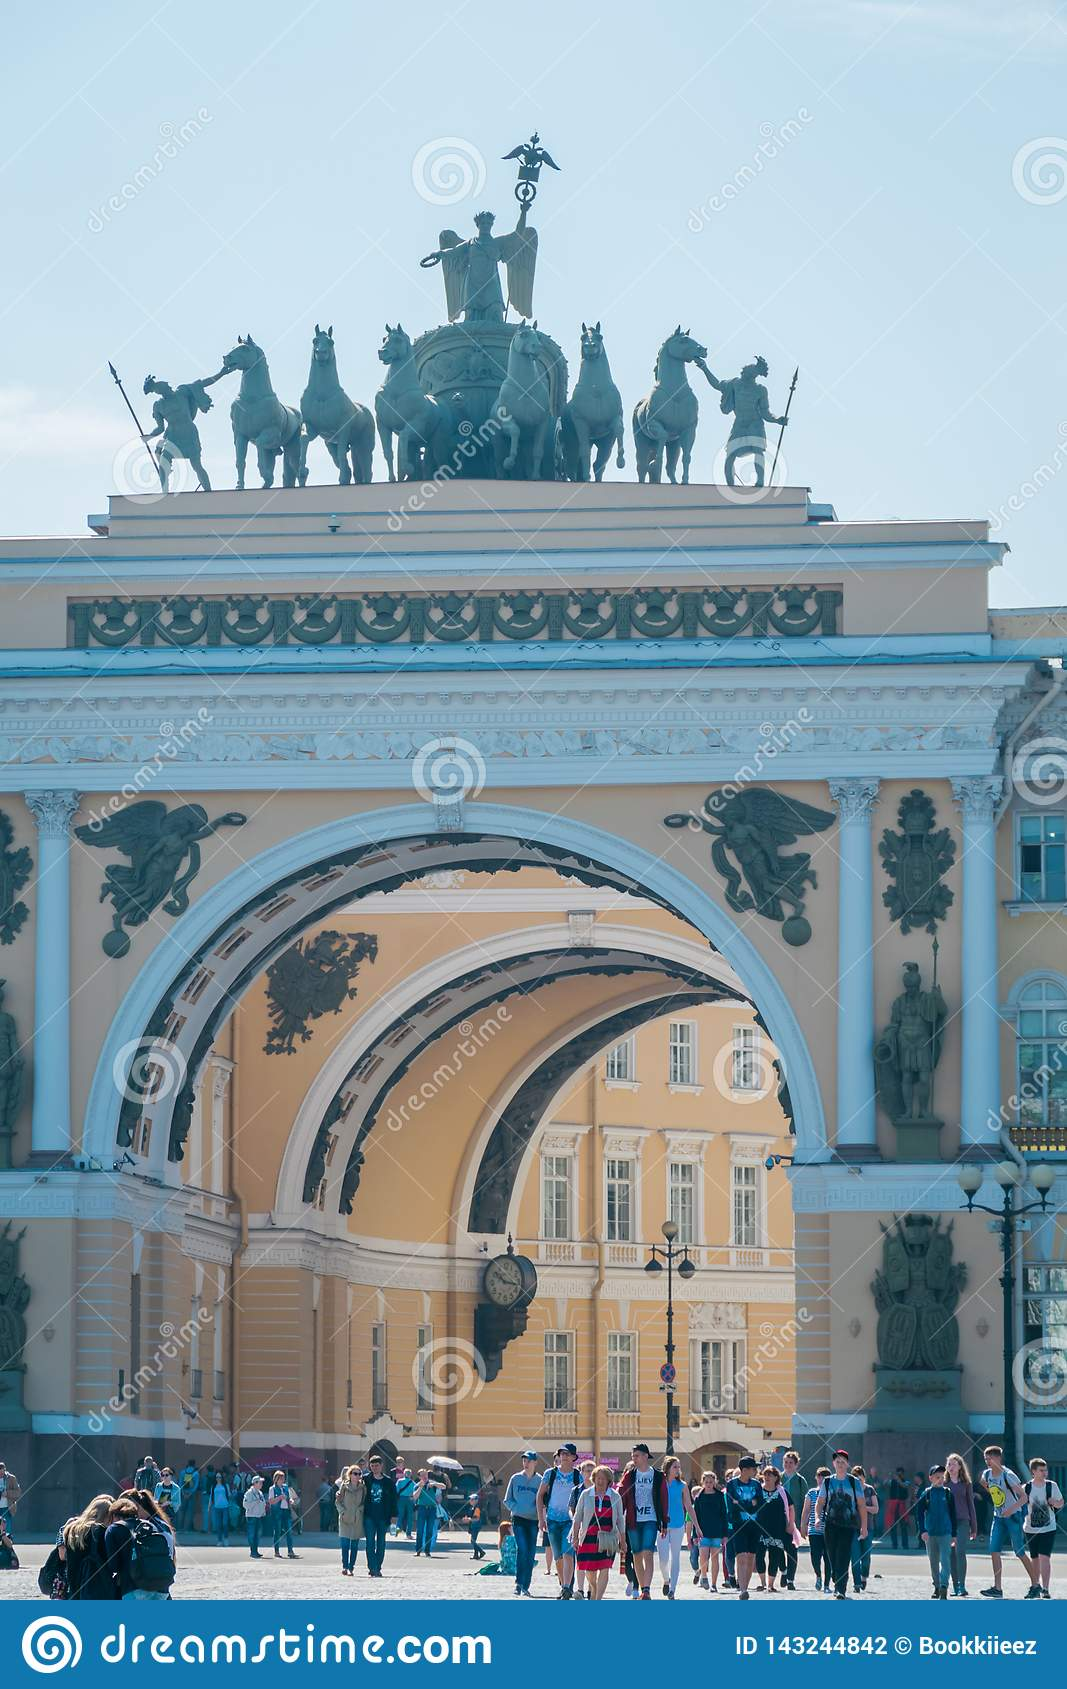 The General Staff building, State Hermitage Museum, St. Petersburg, Russia.